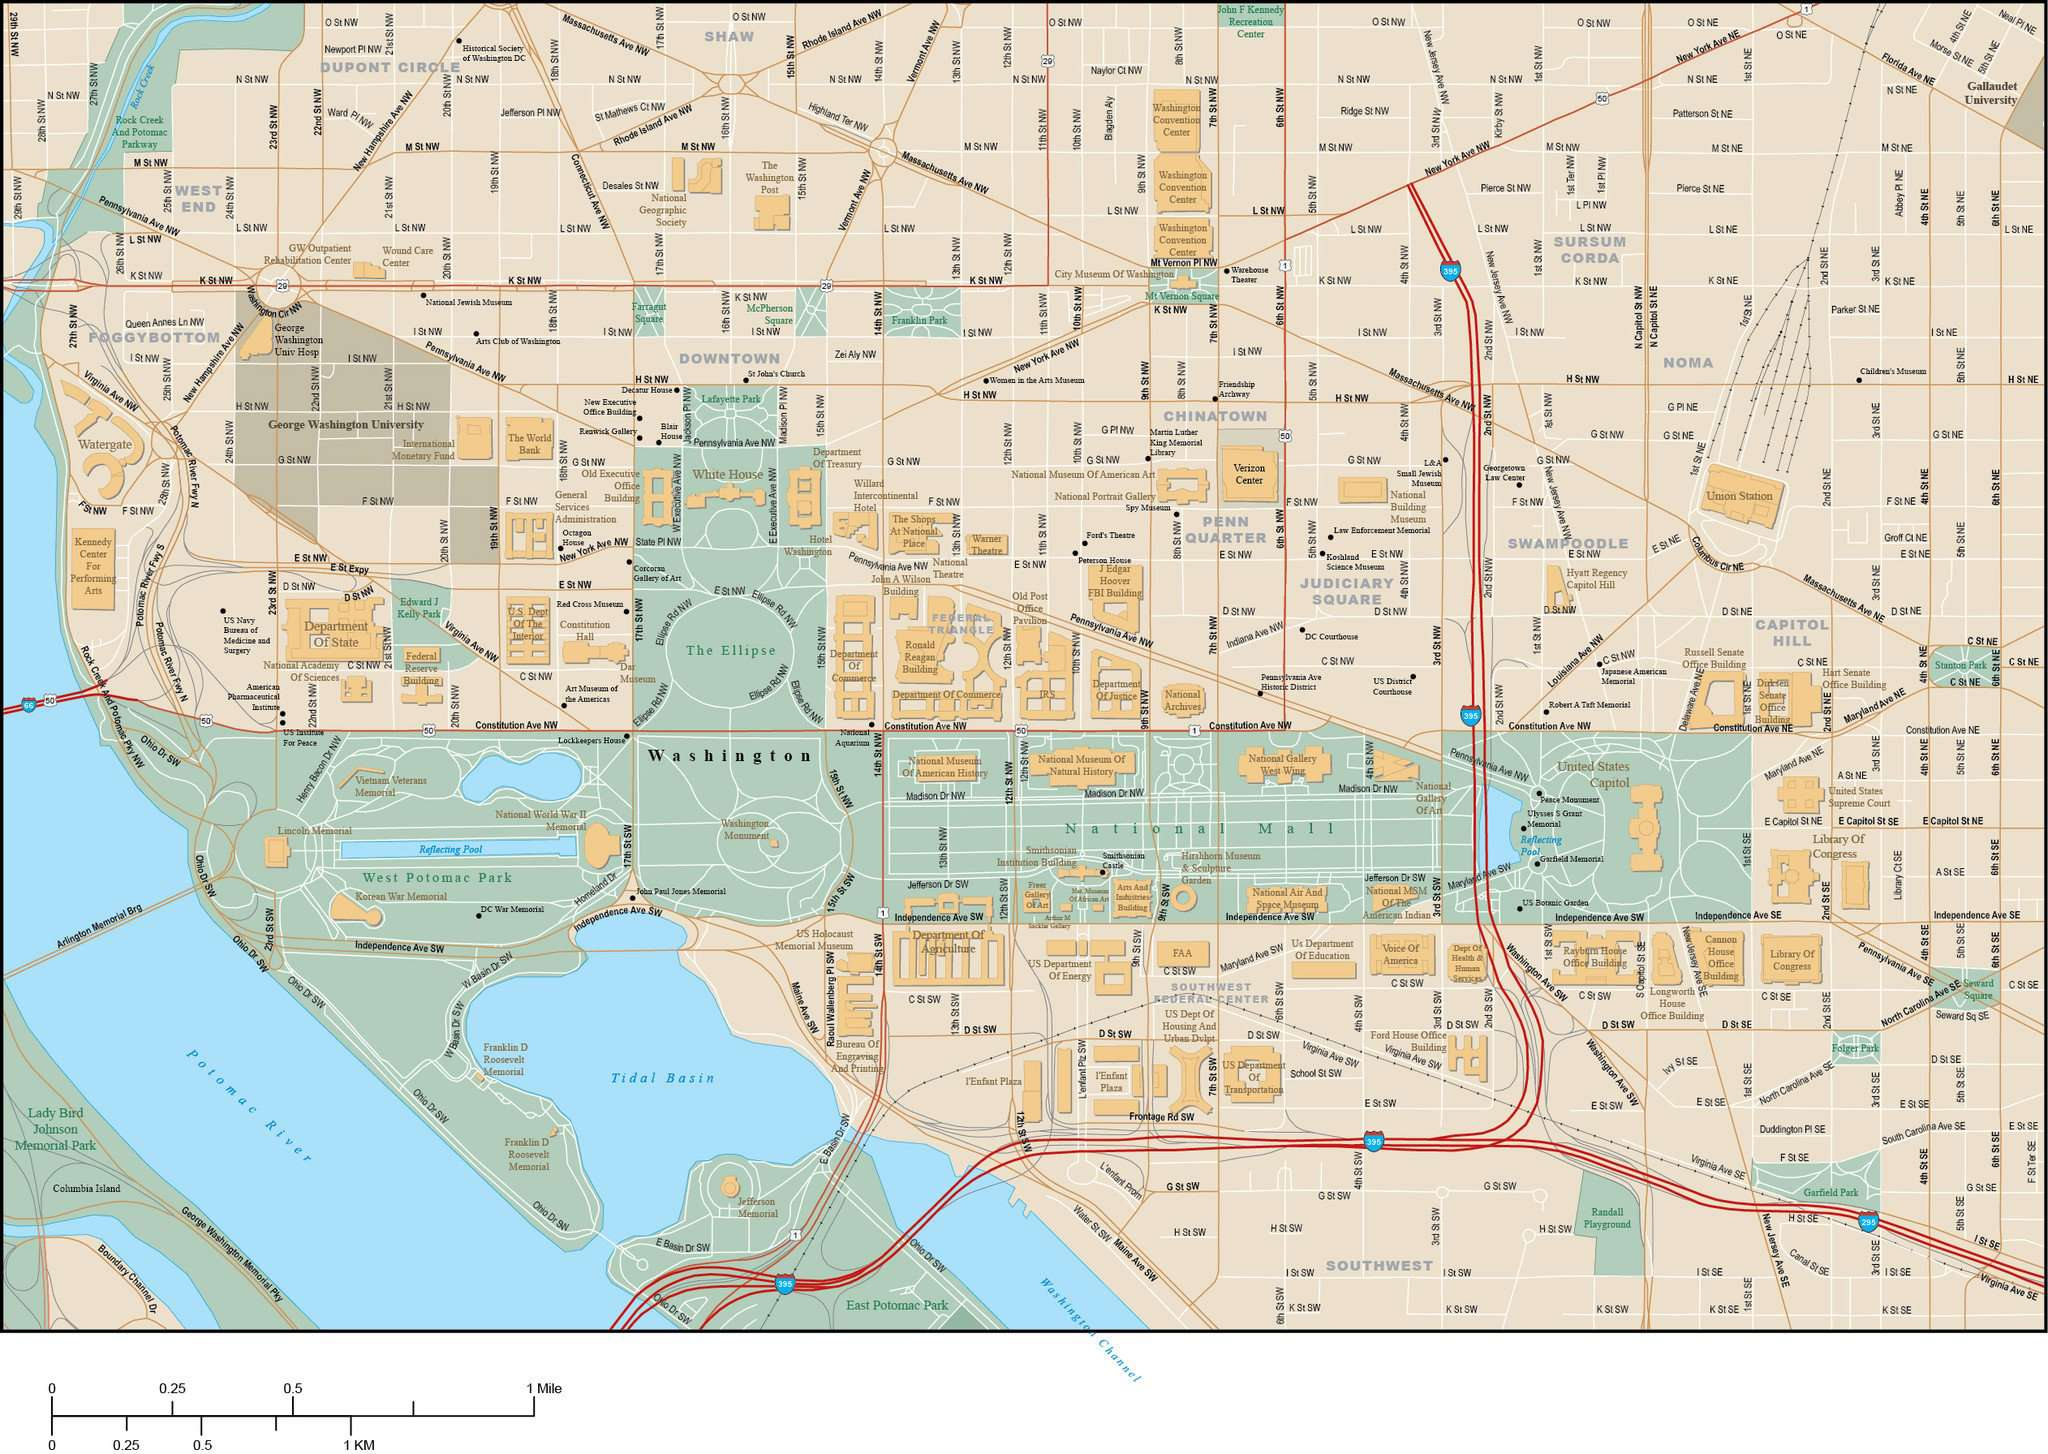 Washington DC National Mall Area Vector Map – Map Resources